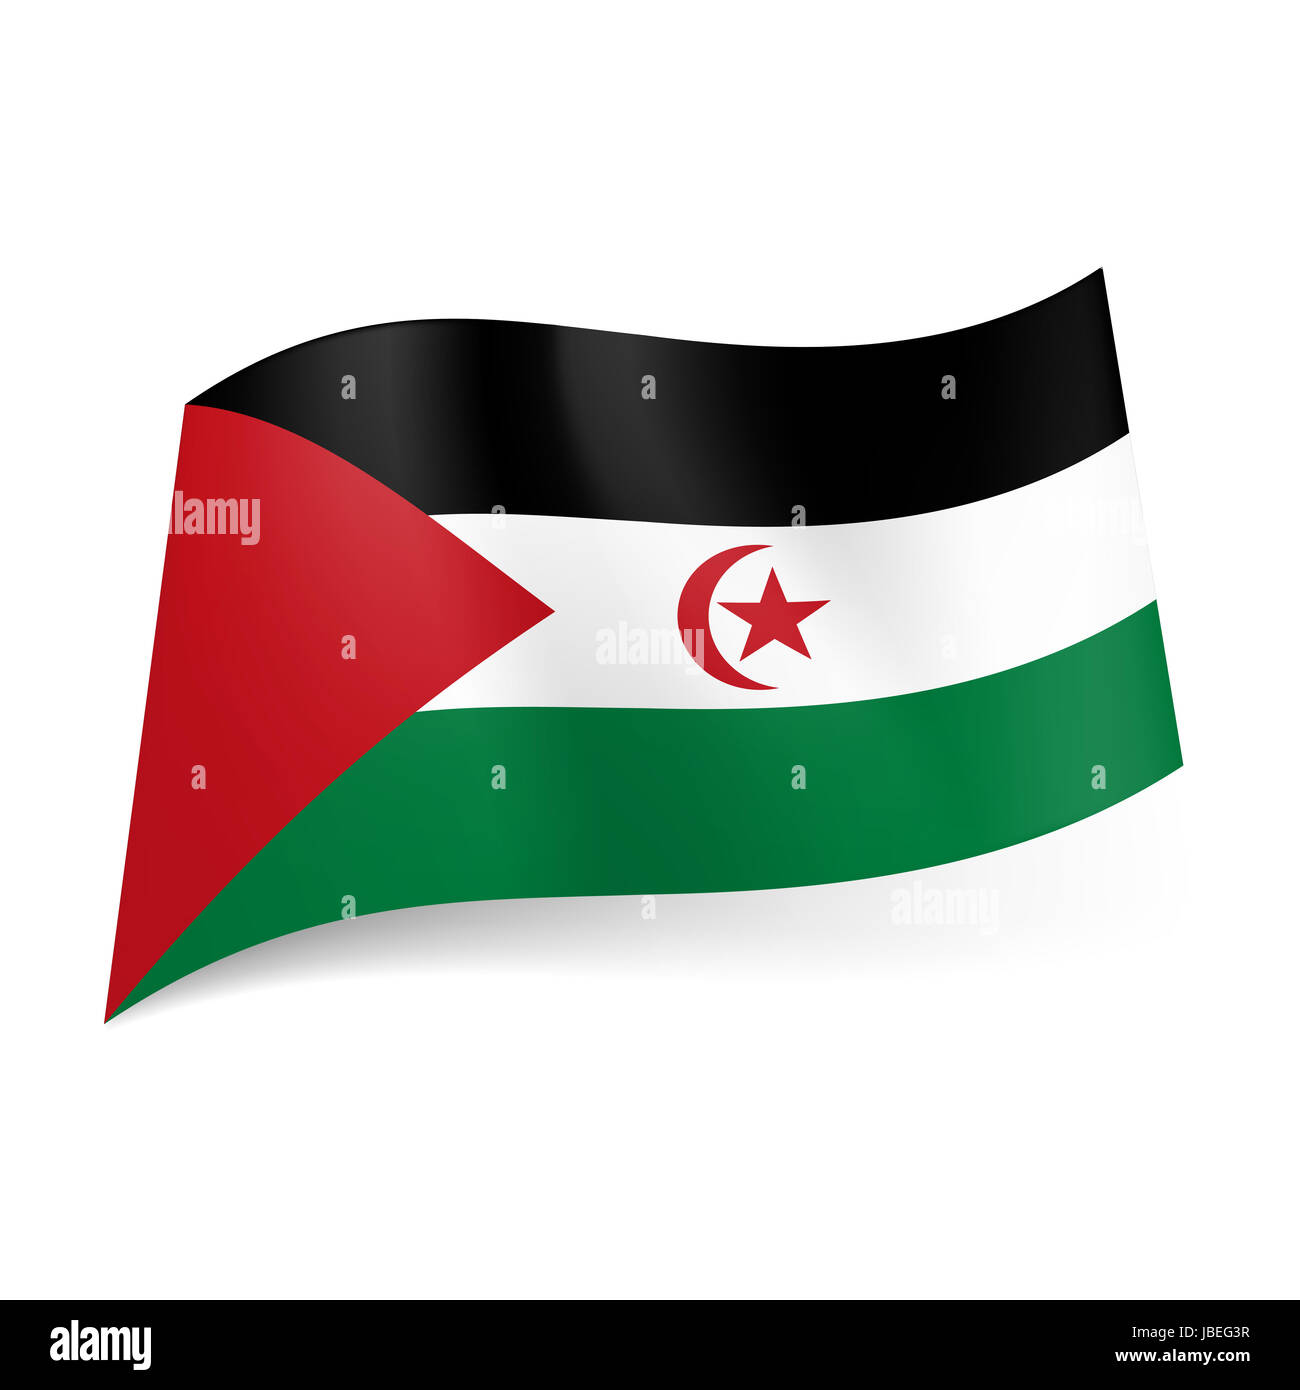 National flag of Sahrawi Arab Democratic Republic. Black, white and green horizontal stripes with red triangle, - Stock Image